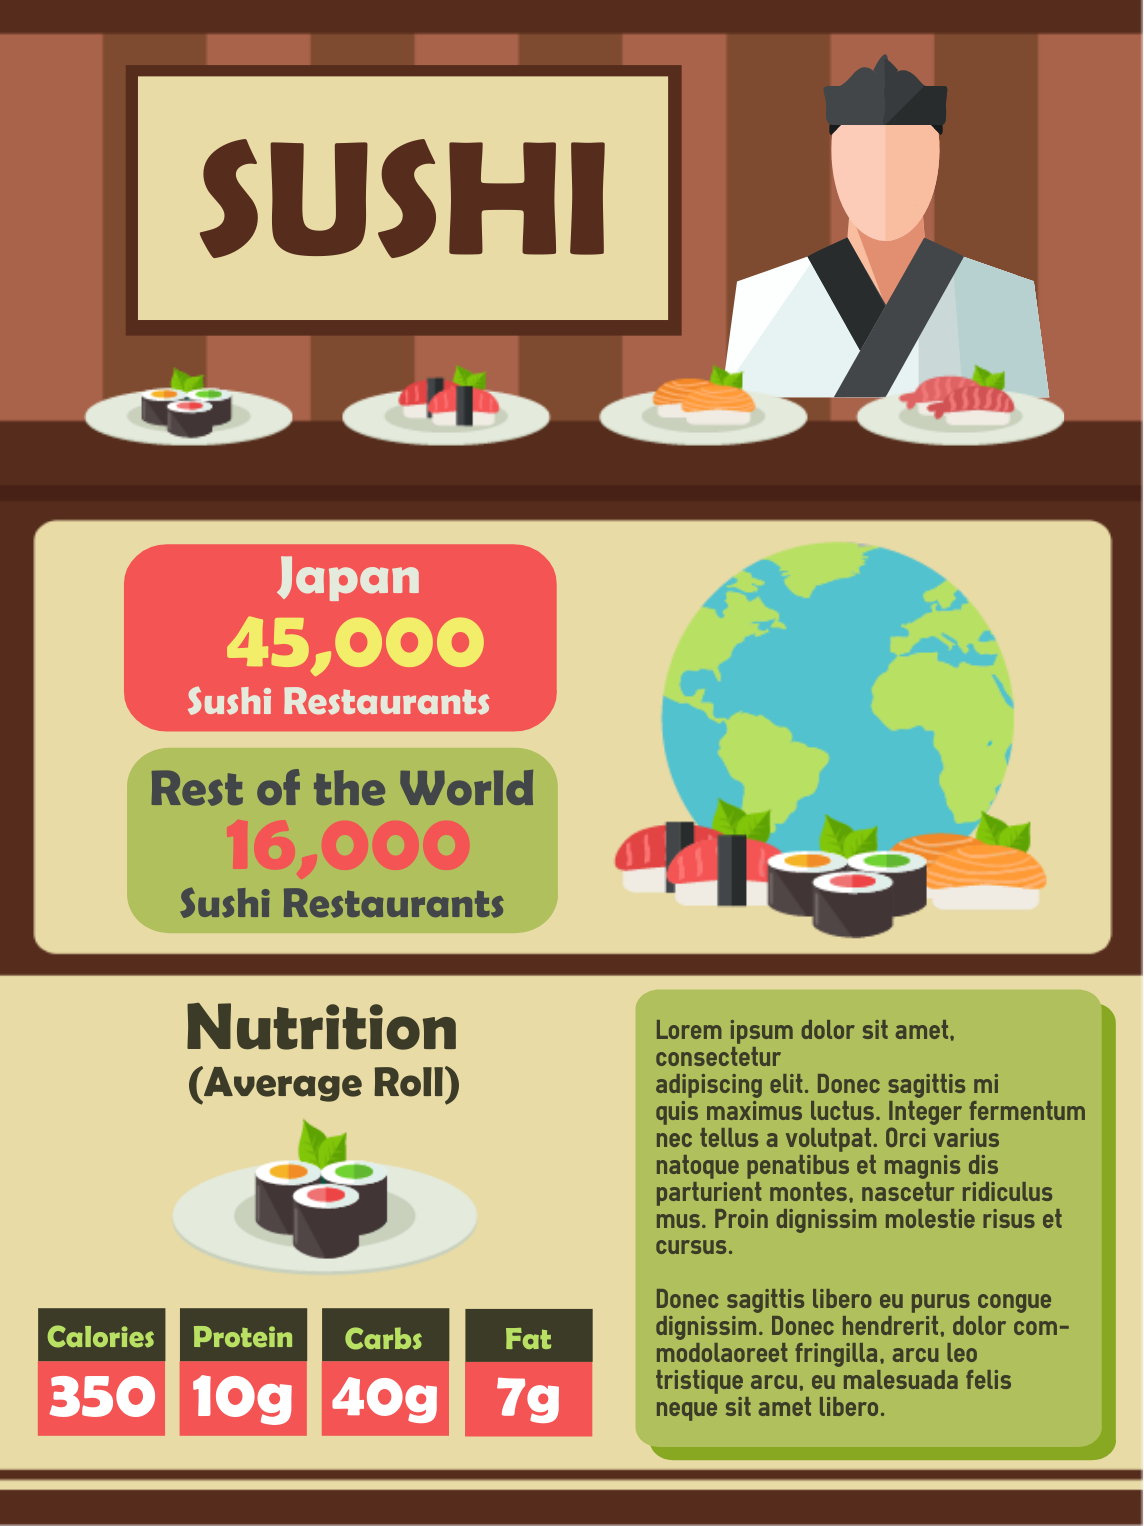 an infographic about sushi.